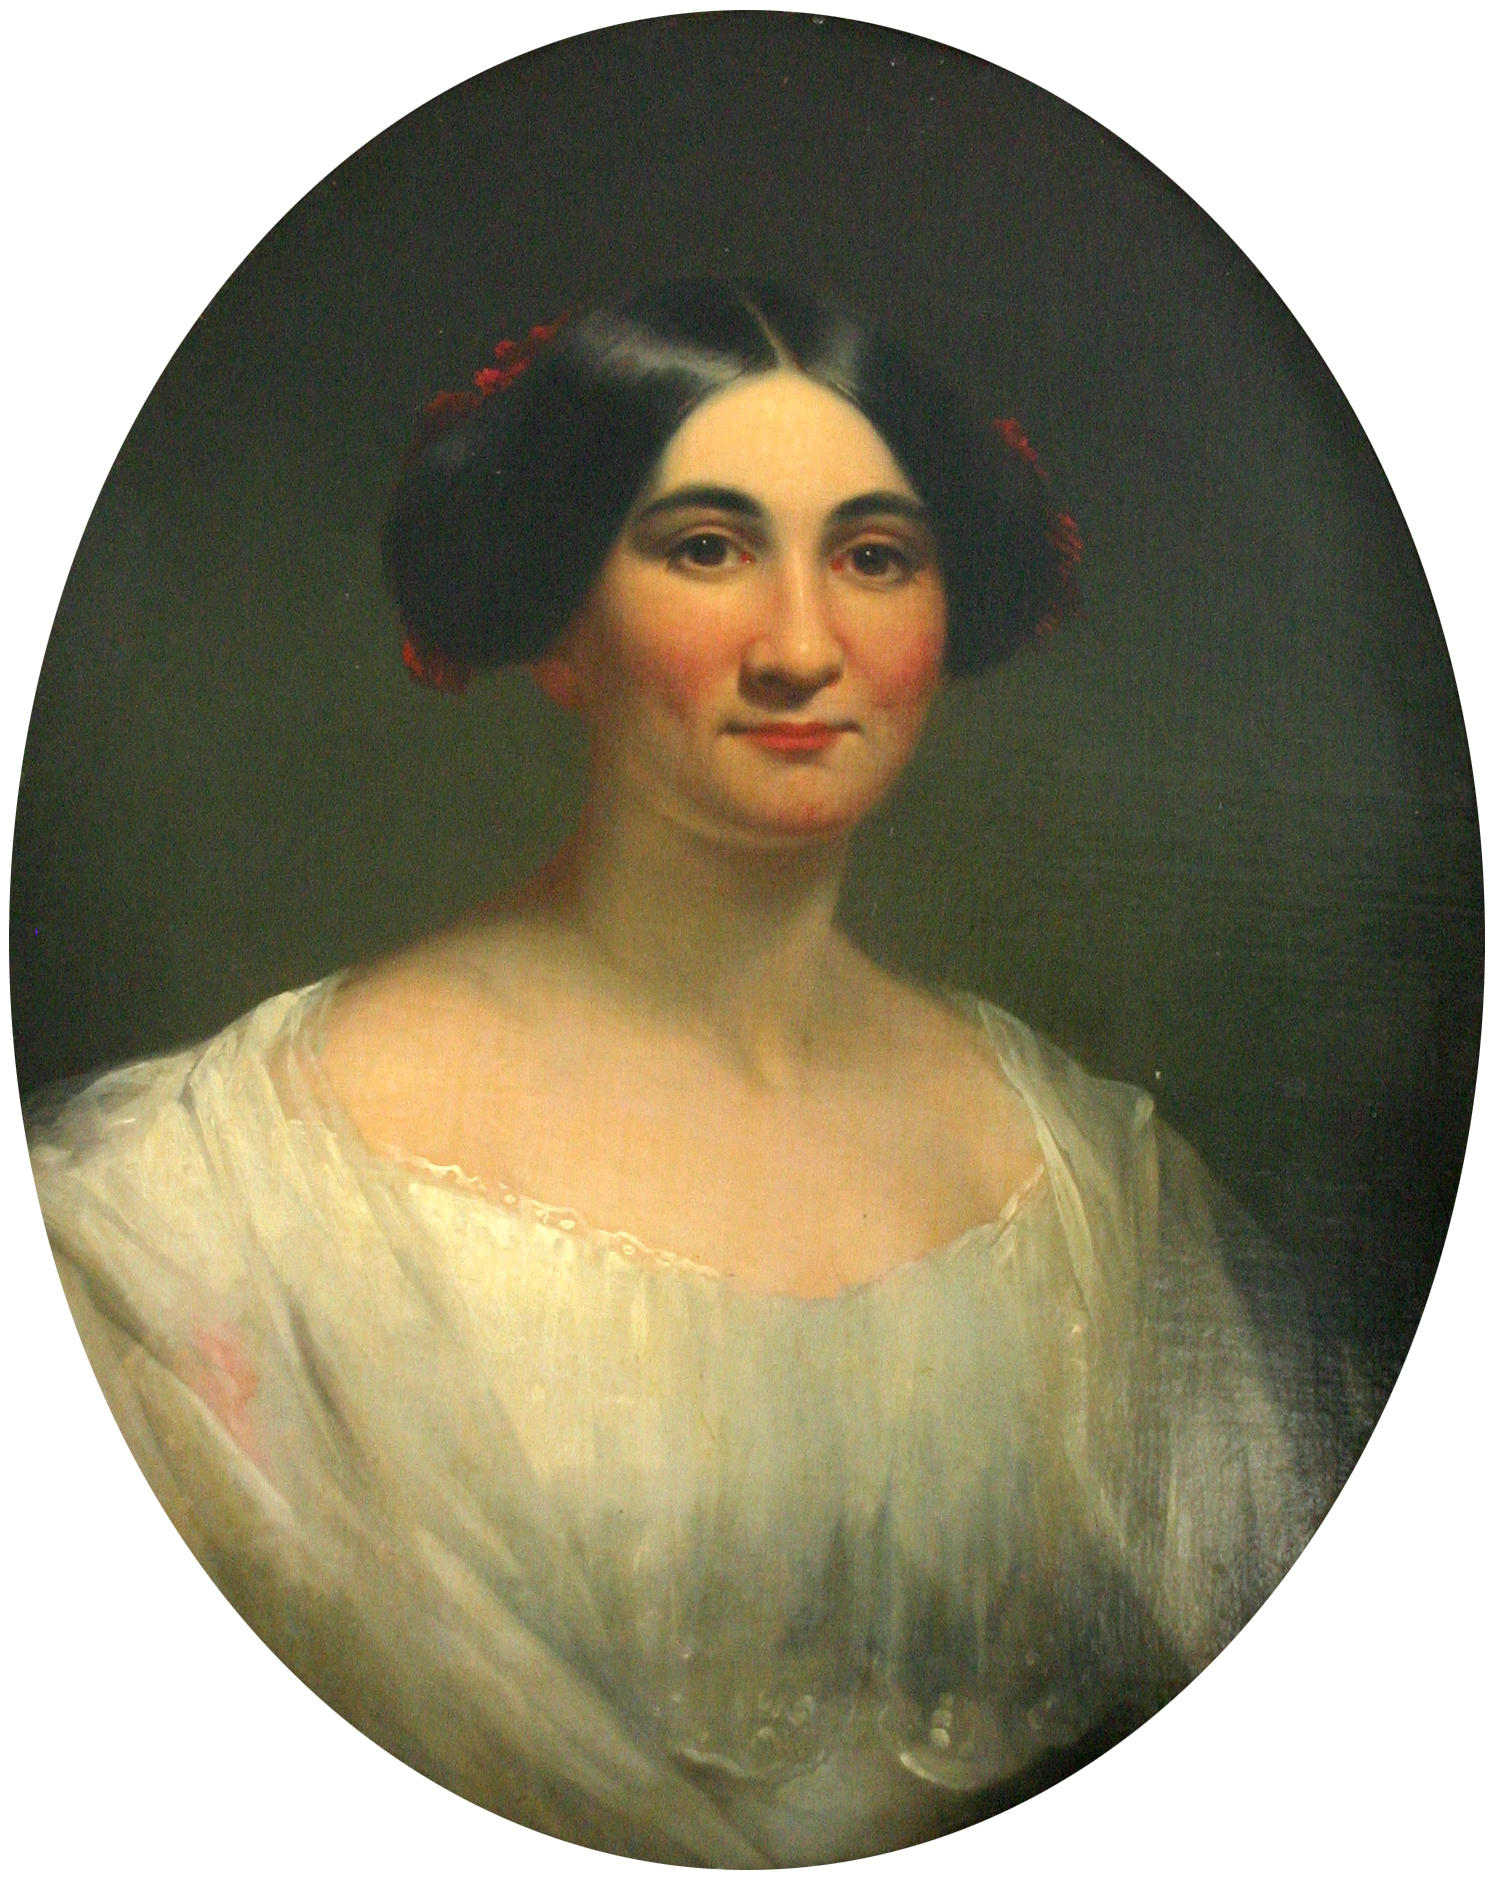 http://upload.wikimedia.org/wikipedia/commons/c/c1/Phoebe_cary_portrait_in_cary_cottage.jpg